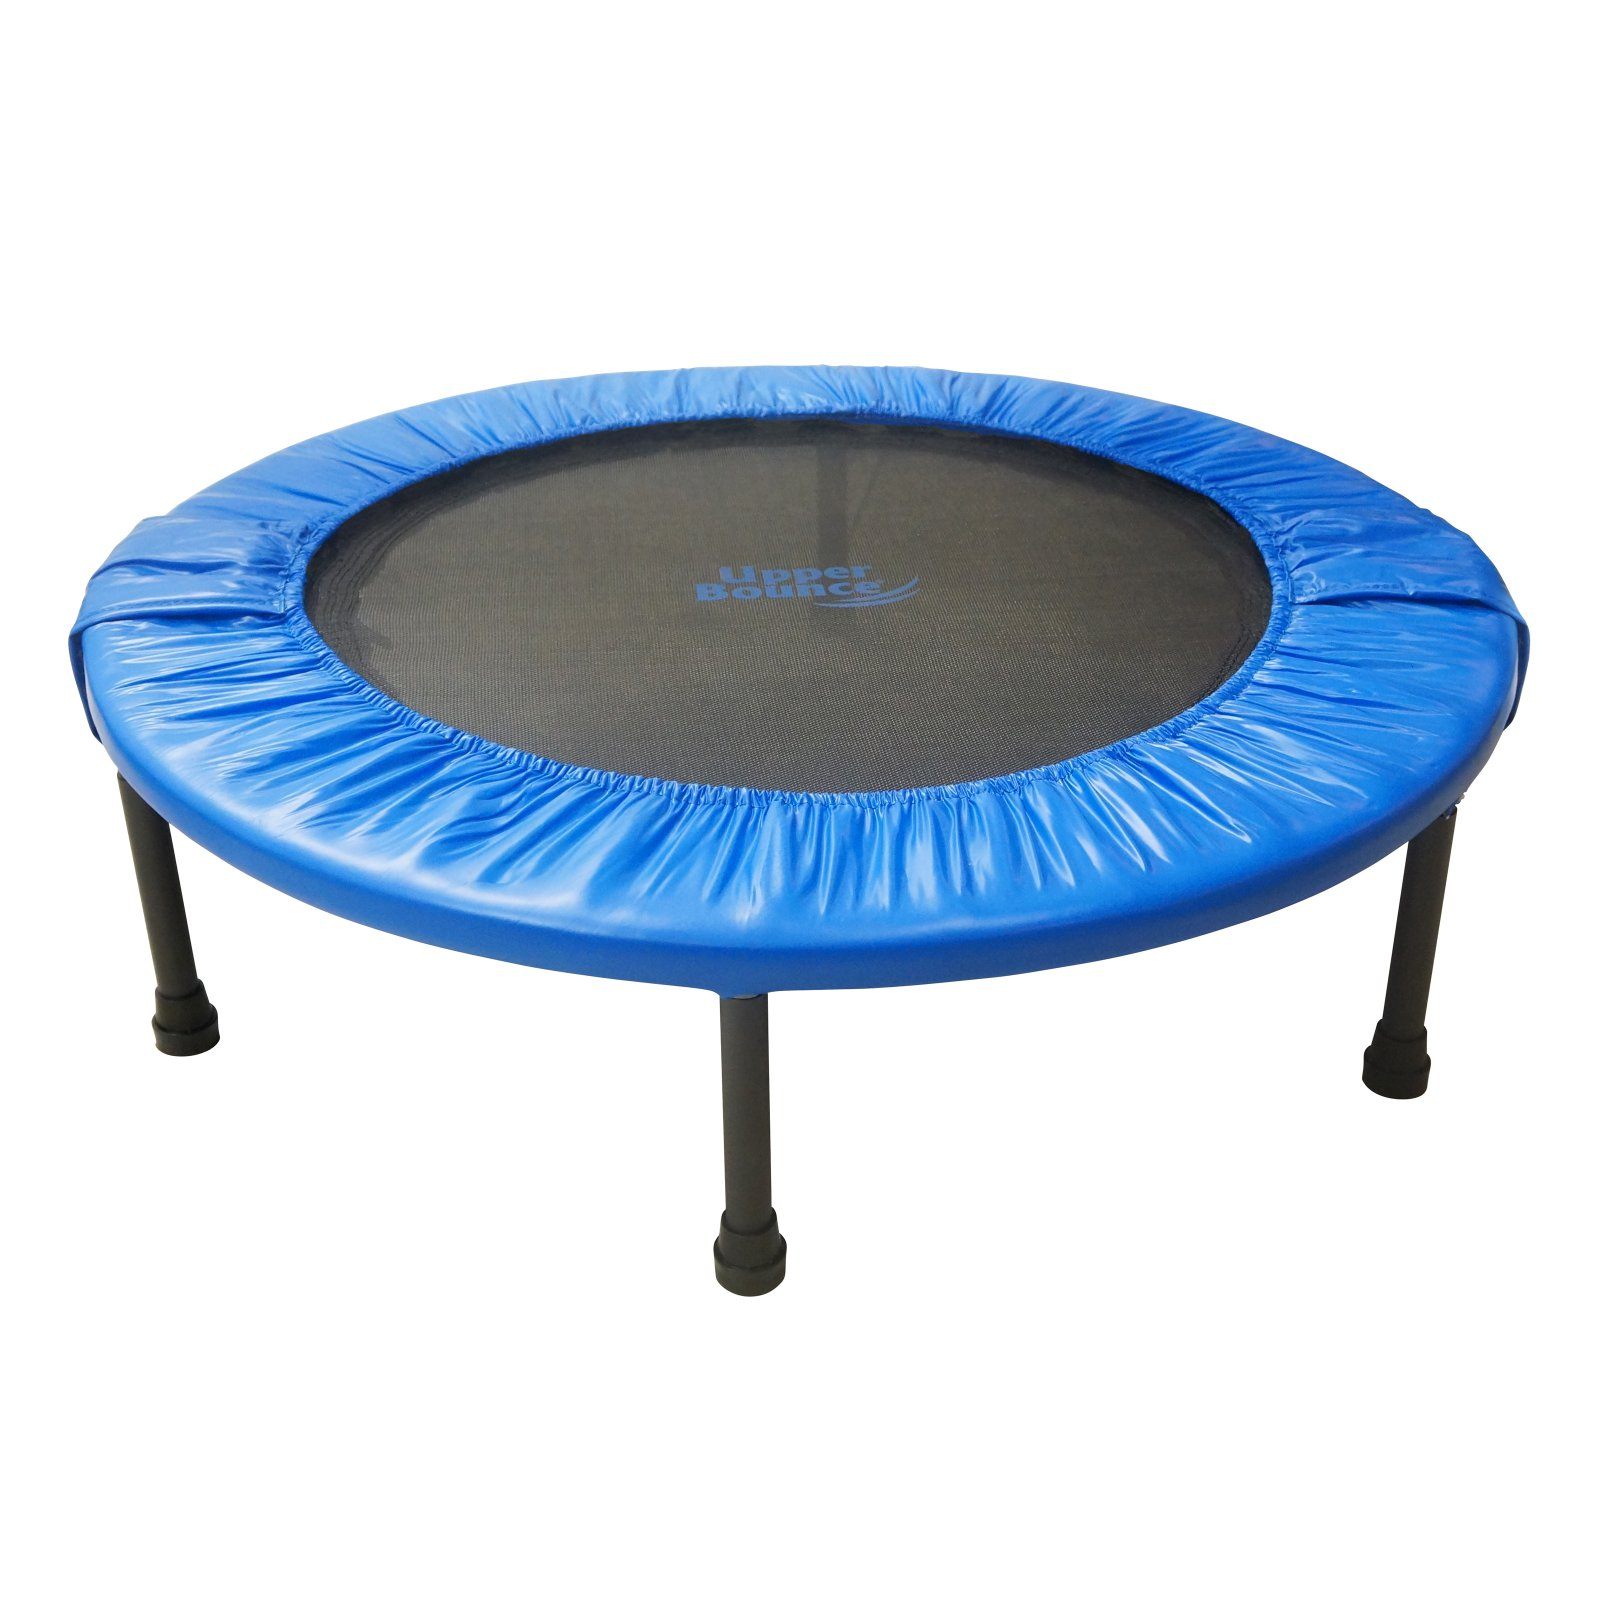 Upper Bounce 36 in. Mini Foldable Rebounder Fitness Trampoline